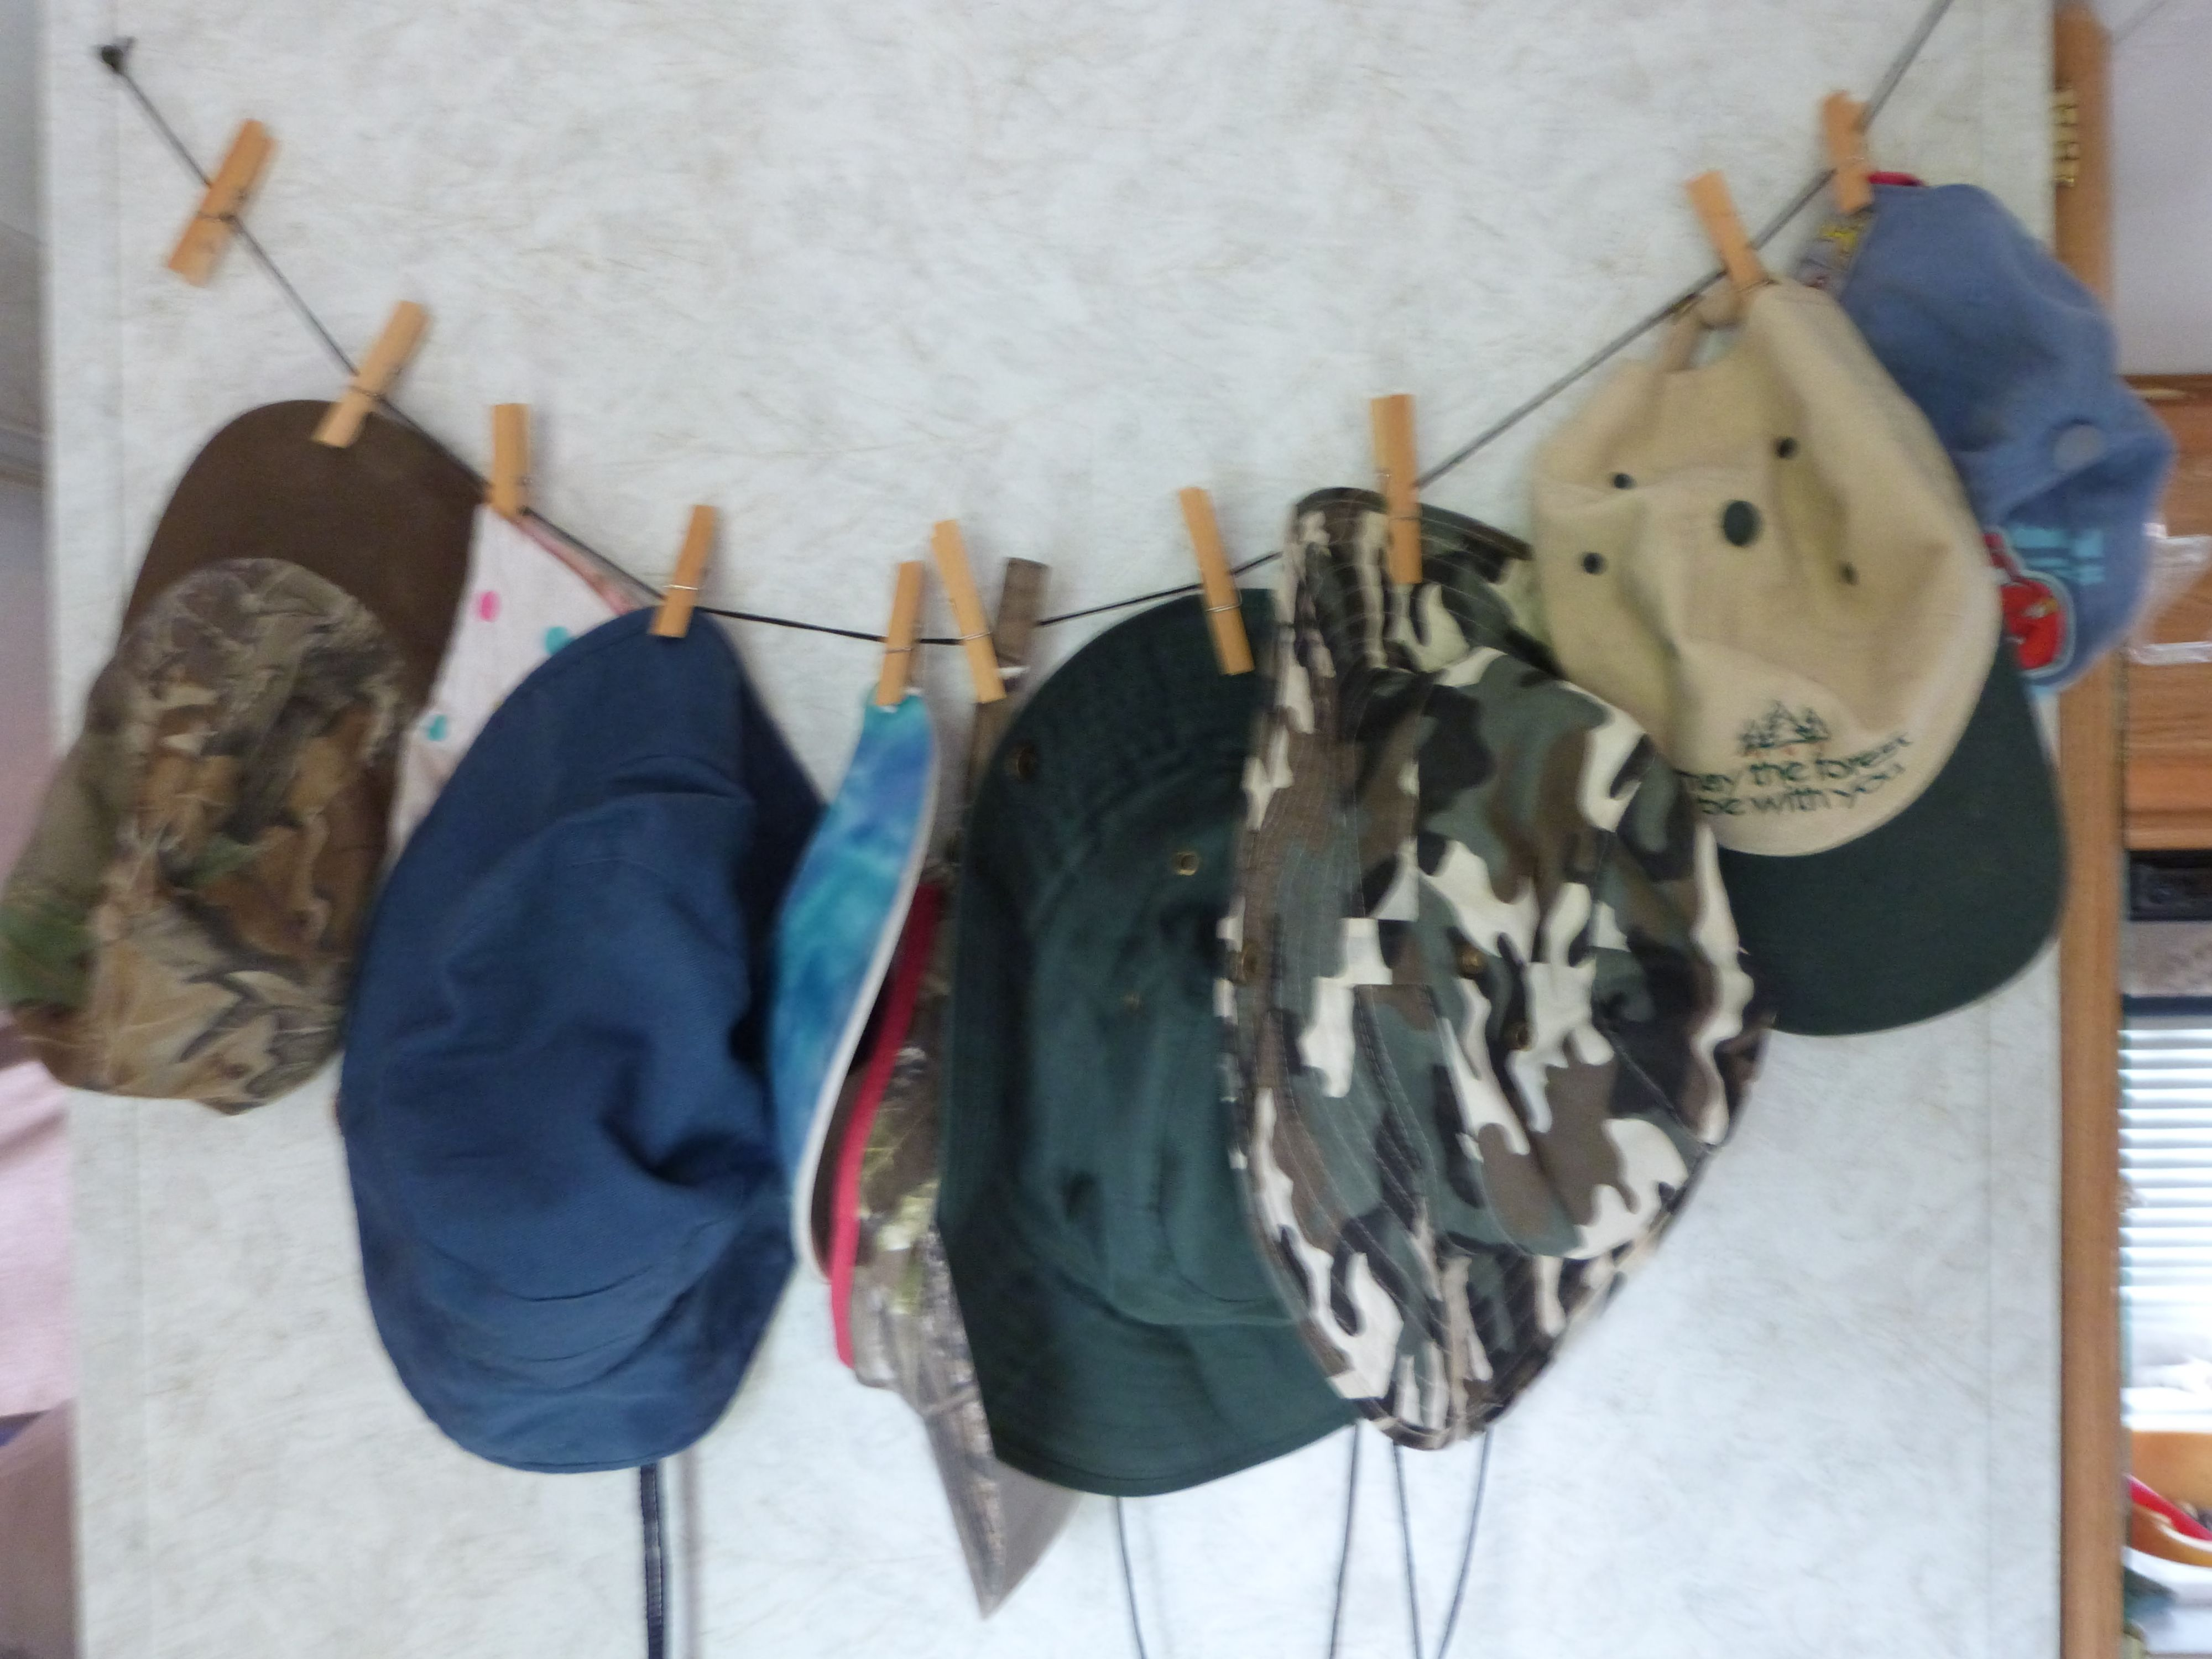 Hat organizer in our rv string stretched between 2 screws